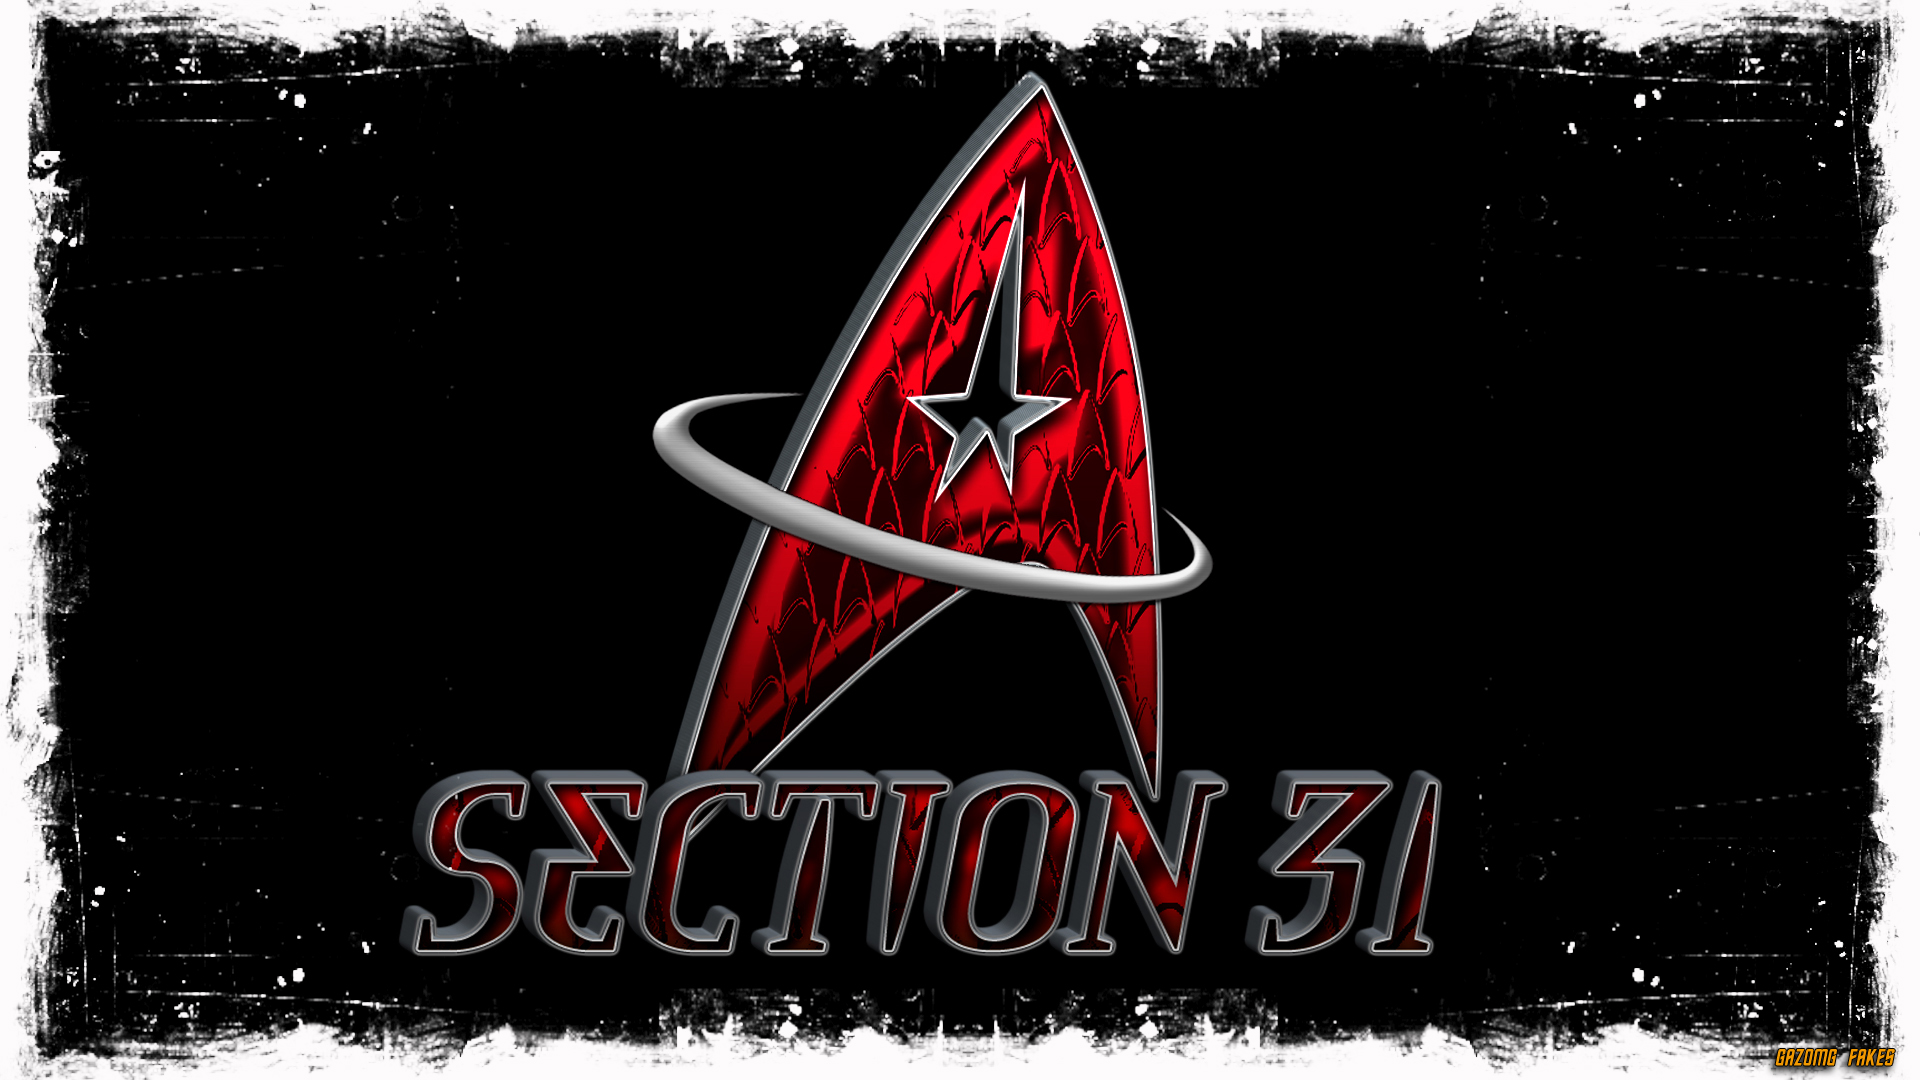 Star trek section 31 logo by gazomg d7msfnn